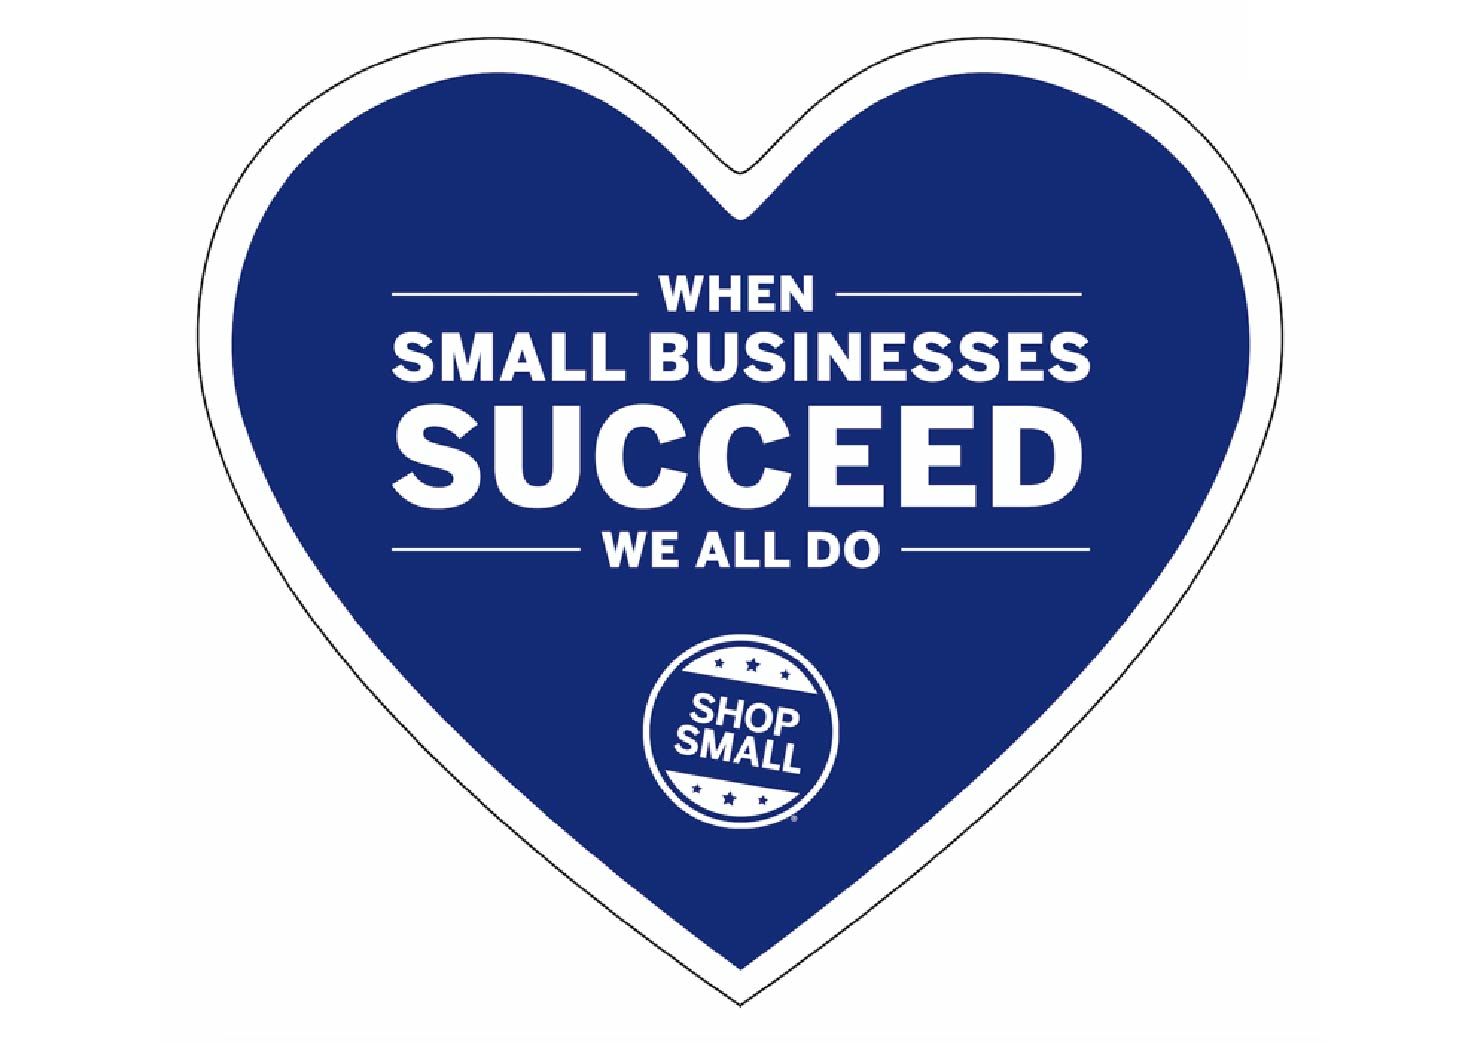 PointofSale Small Business Heart Cutout Small Business Saturday 01